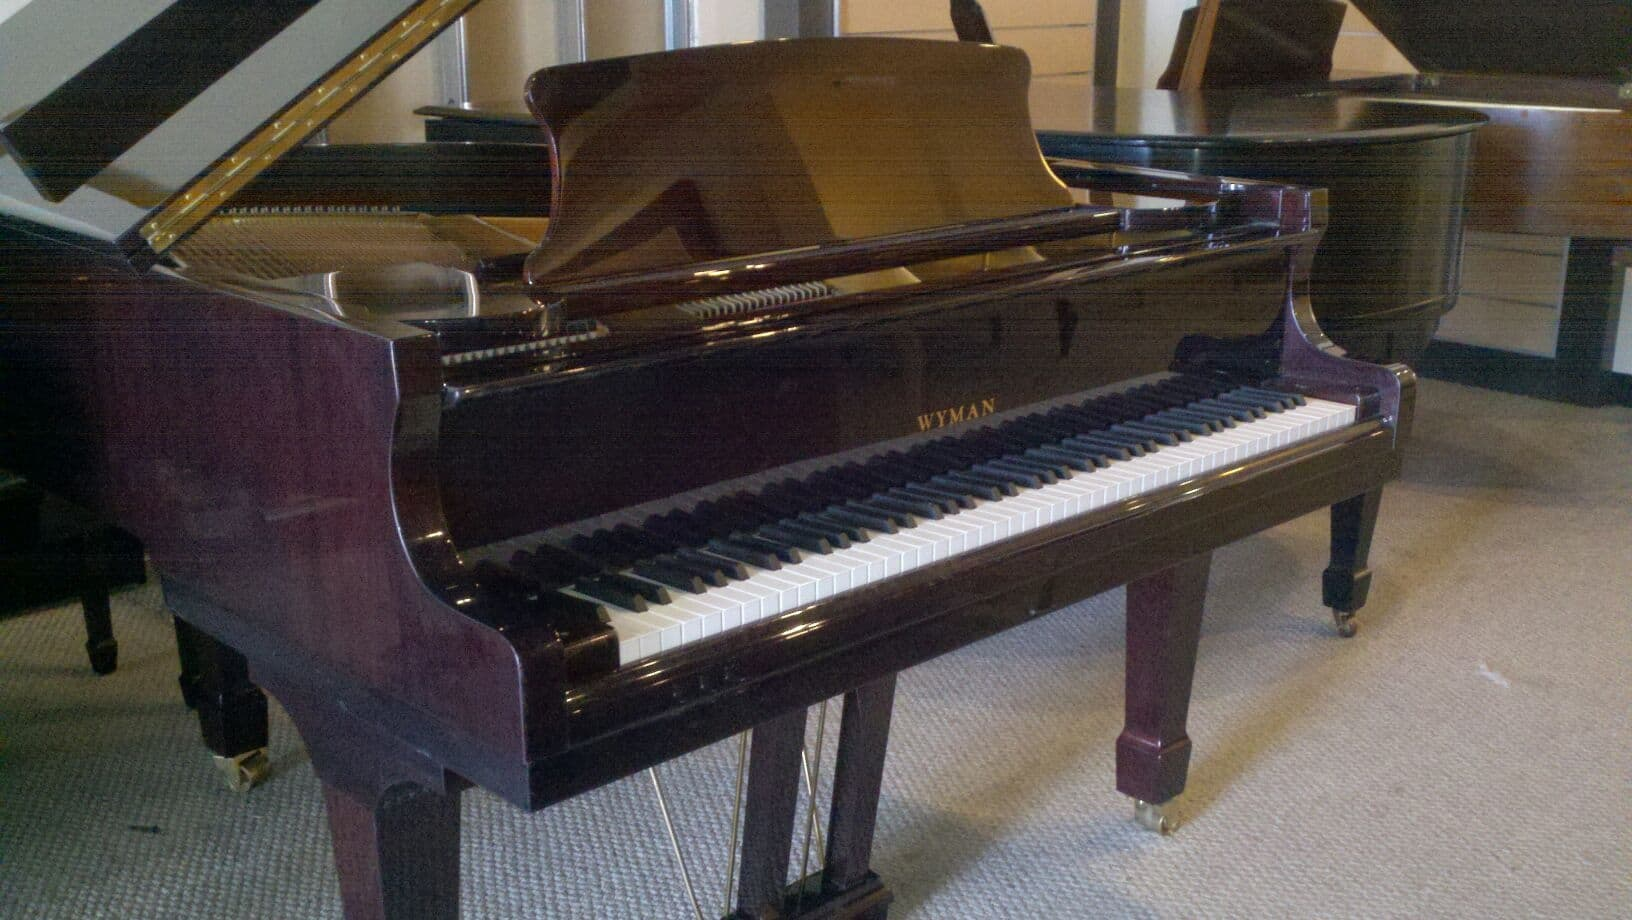 Feature Quot Used Quot Piano Wyman Grand Miller Piano